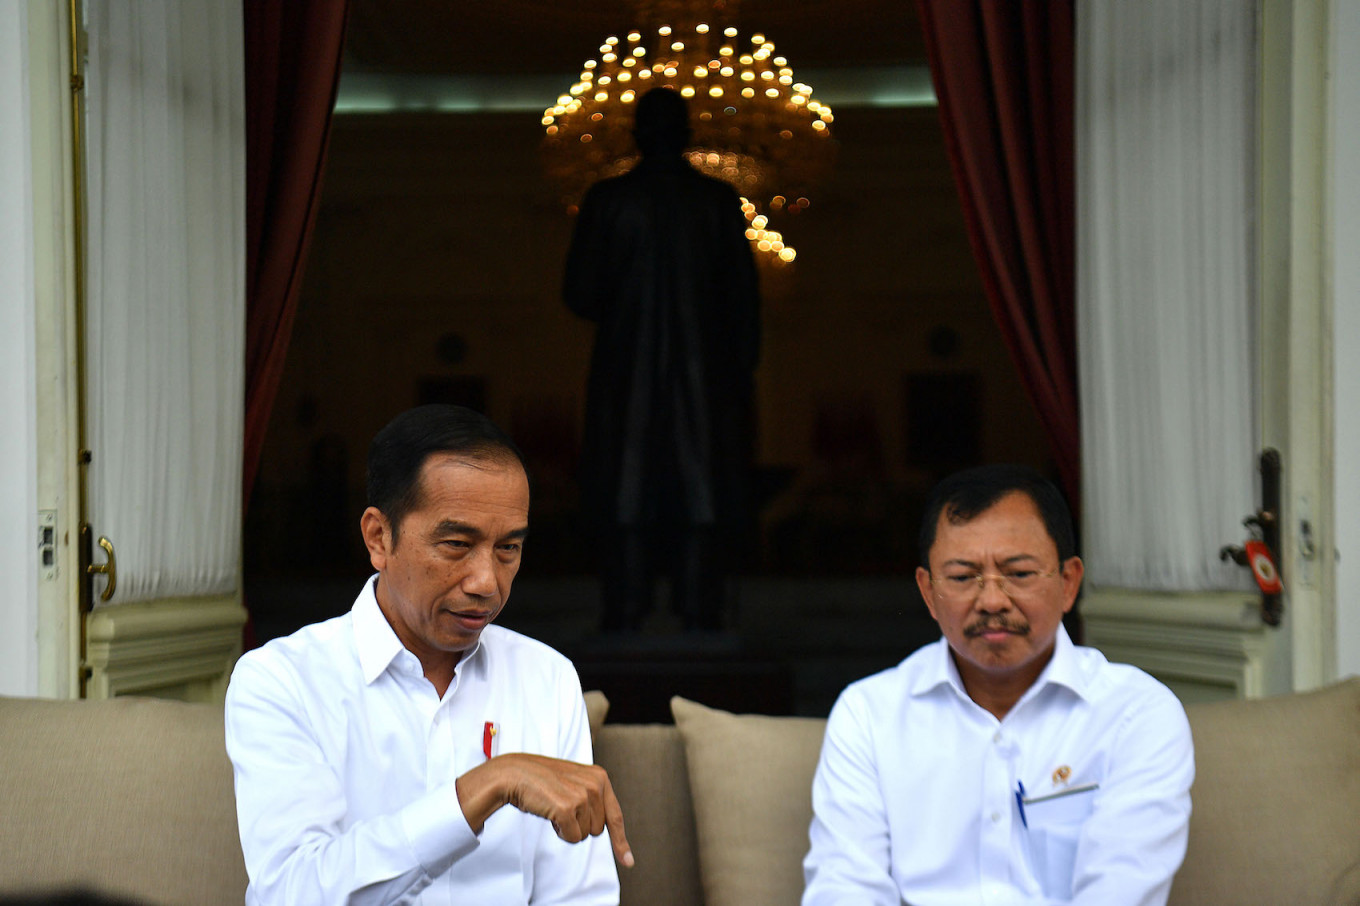 Public trust in Jokowi's COVID-19 response declines, survey finds